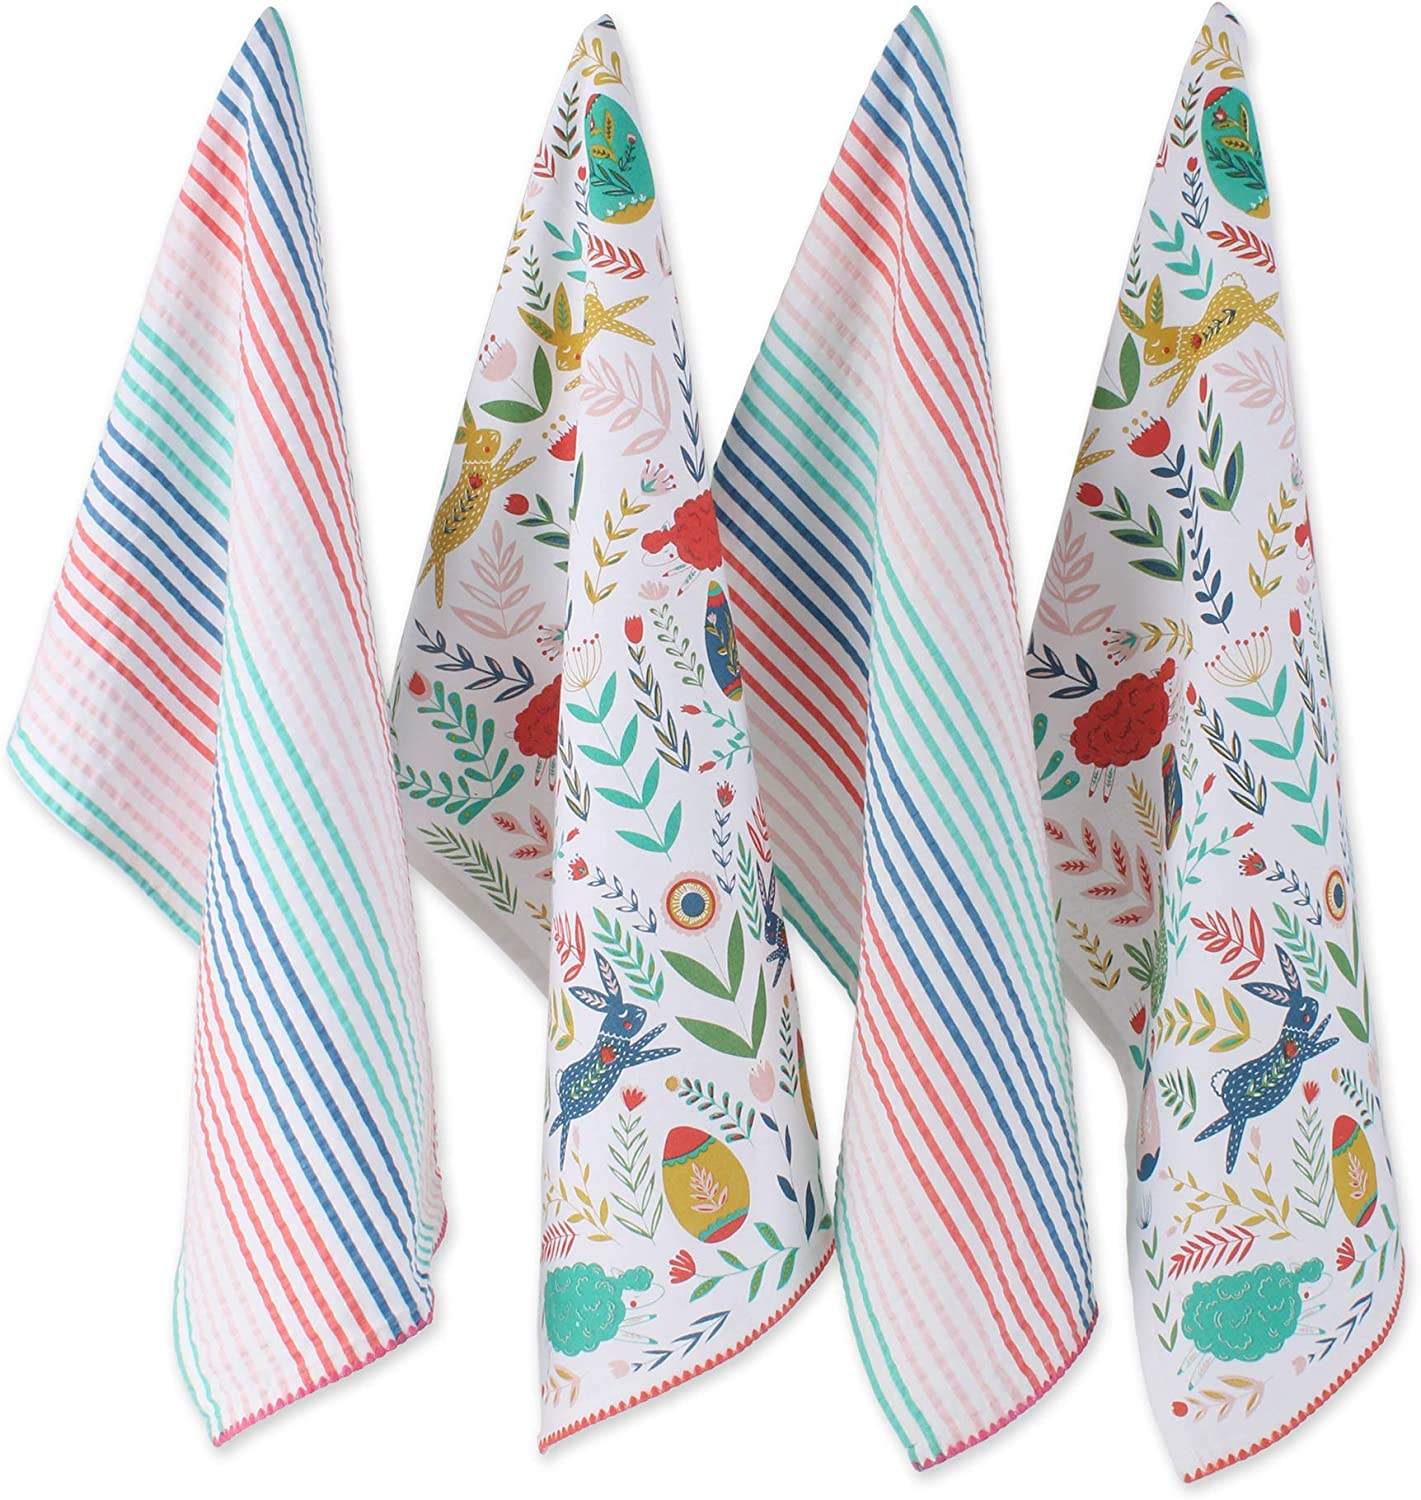 DII Folk Collection Kitchen, Dishtowel Set, Easter Garden 4 Piece